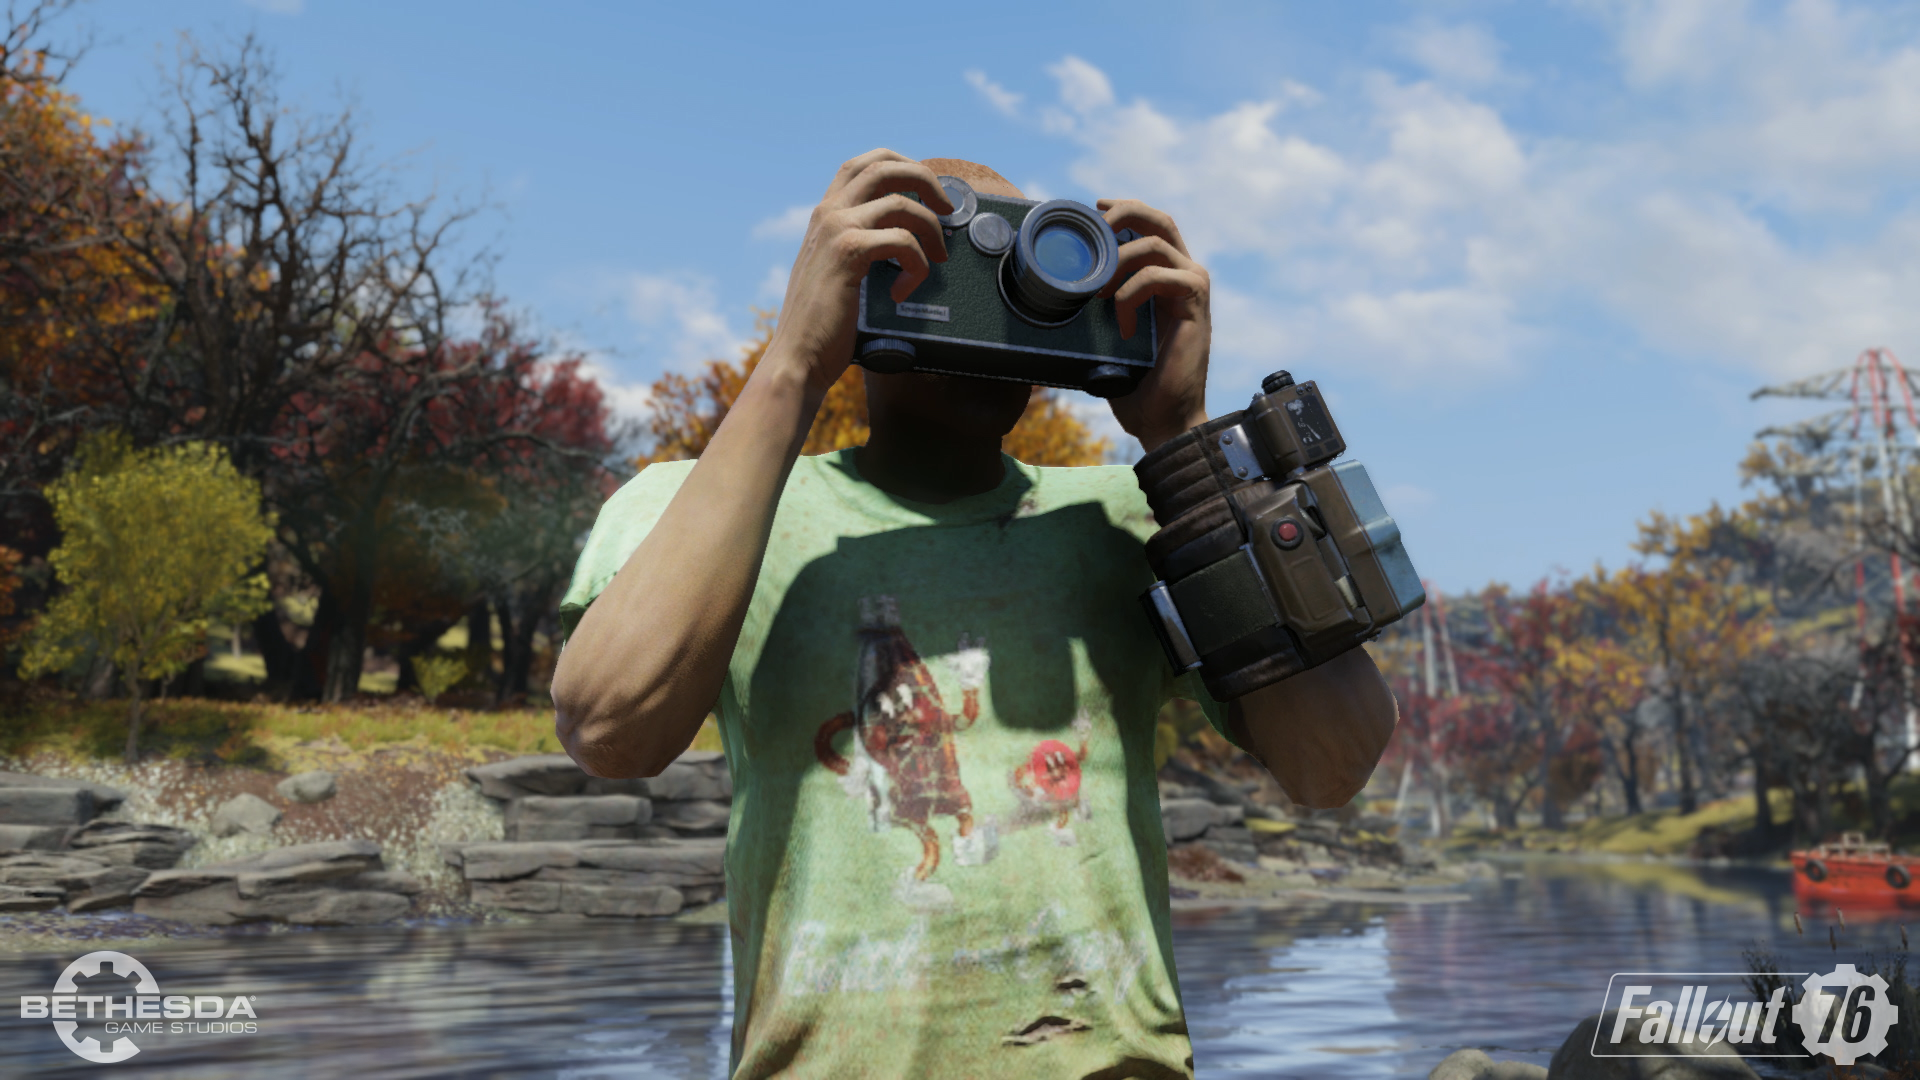 Fallout 76 patch notes – Technology Breaking News